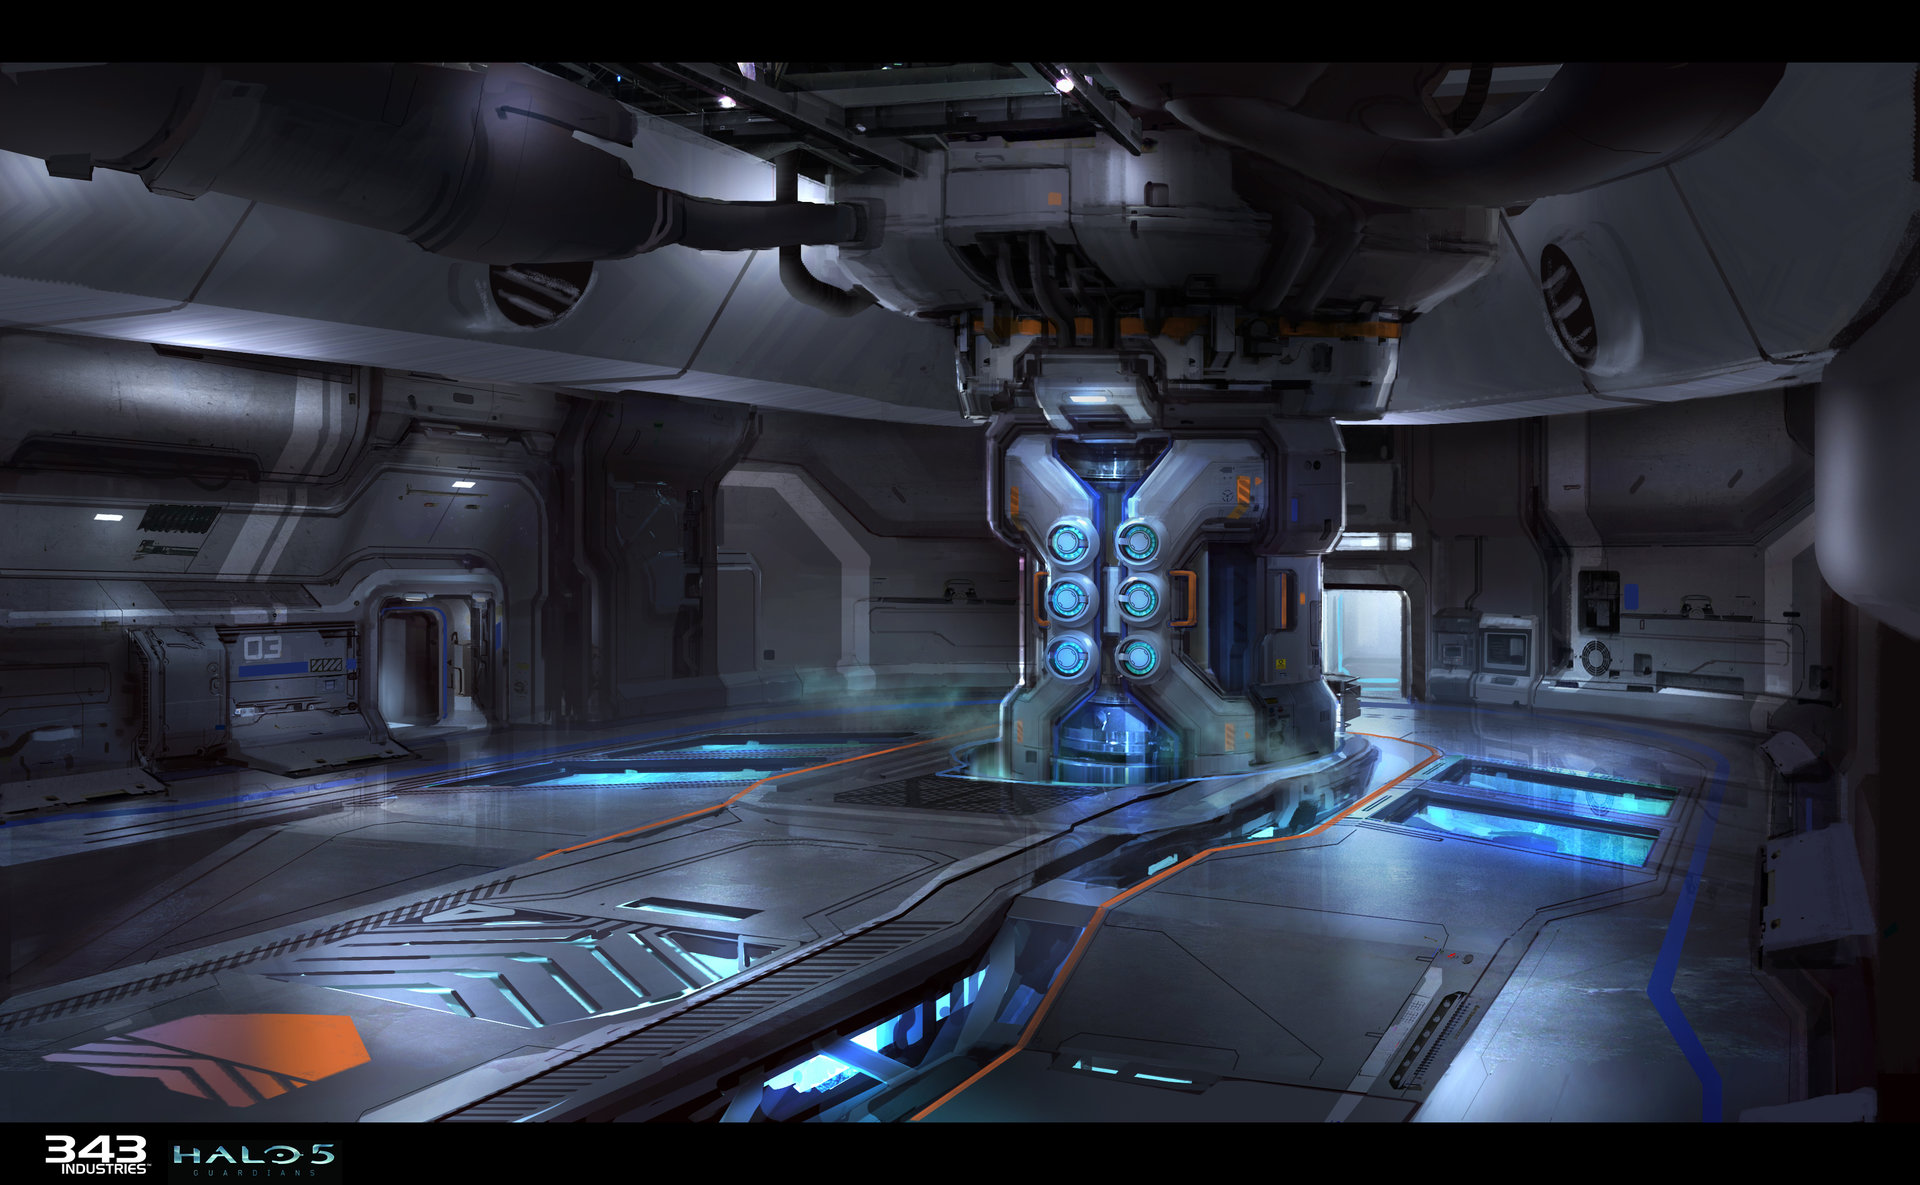 Halo 5 Guardians Concept Art By Sam Brown Concept Art World